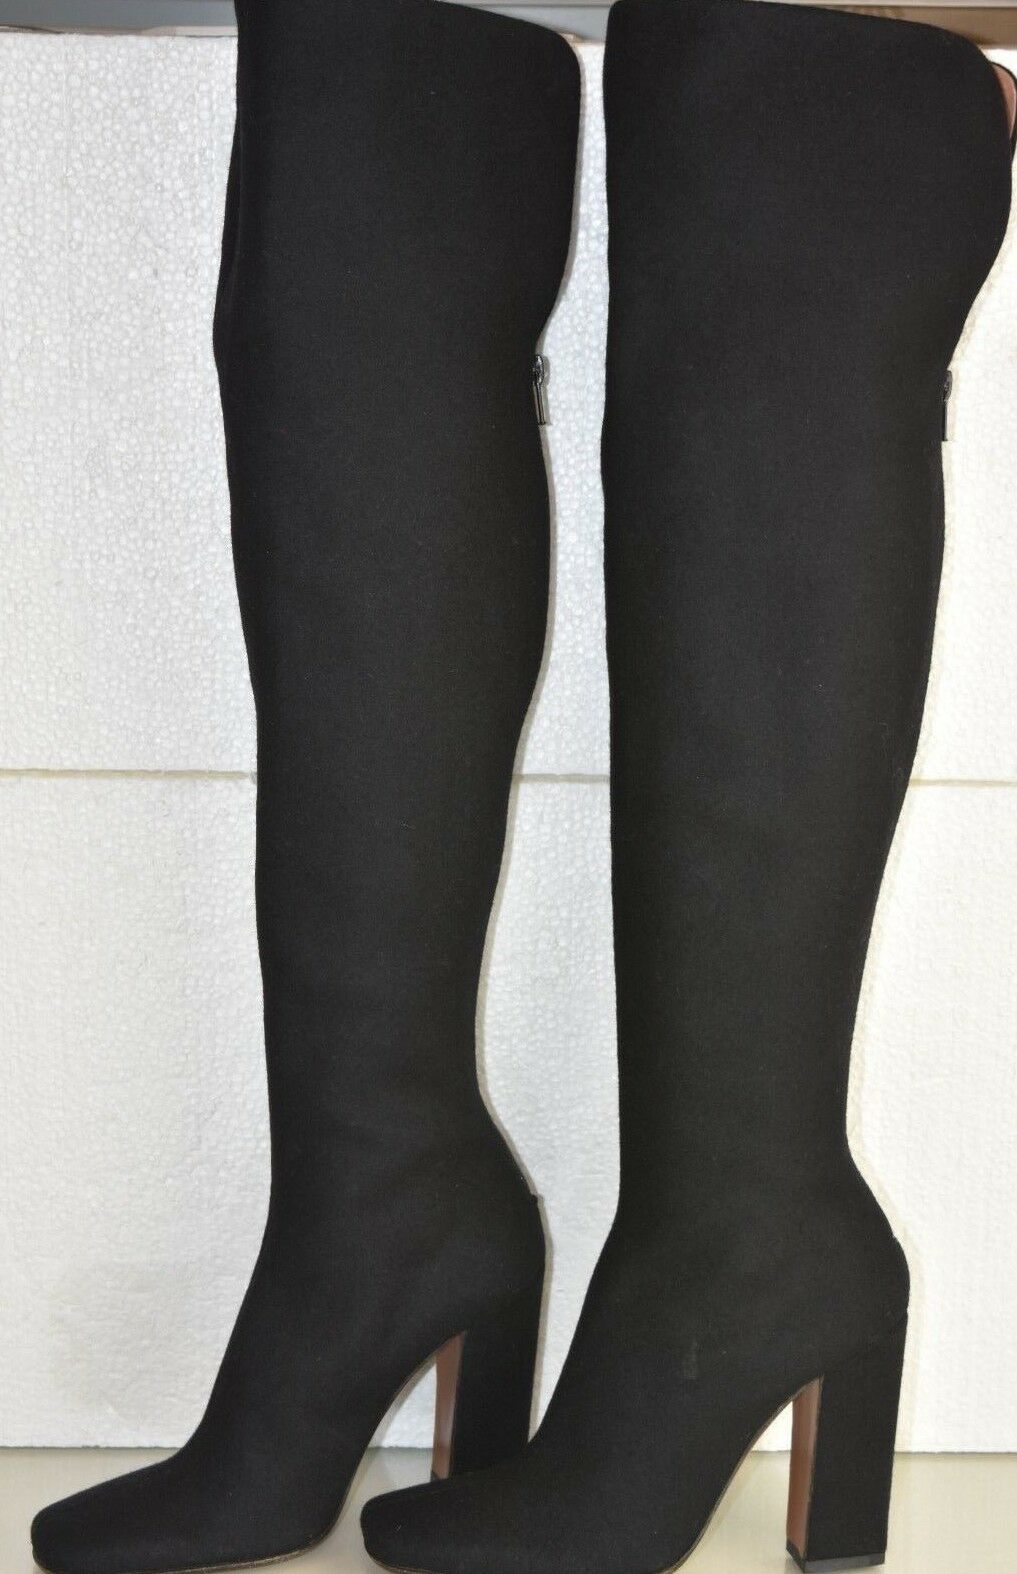 2650 NEW Alaia Over The Knee OTK Tall Boots Black Cashmere Leather shoes 36.5